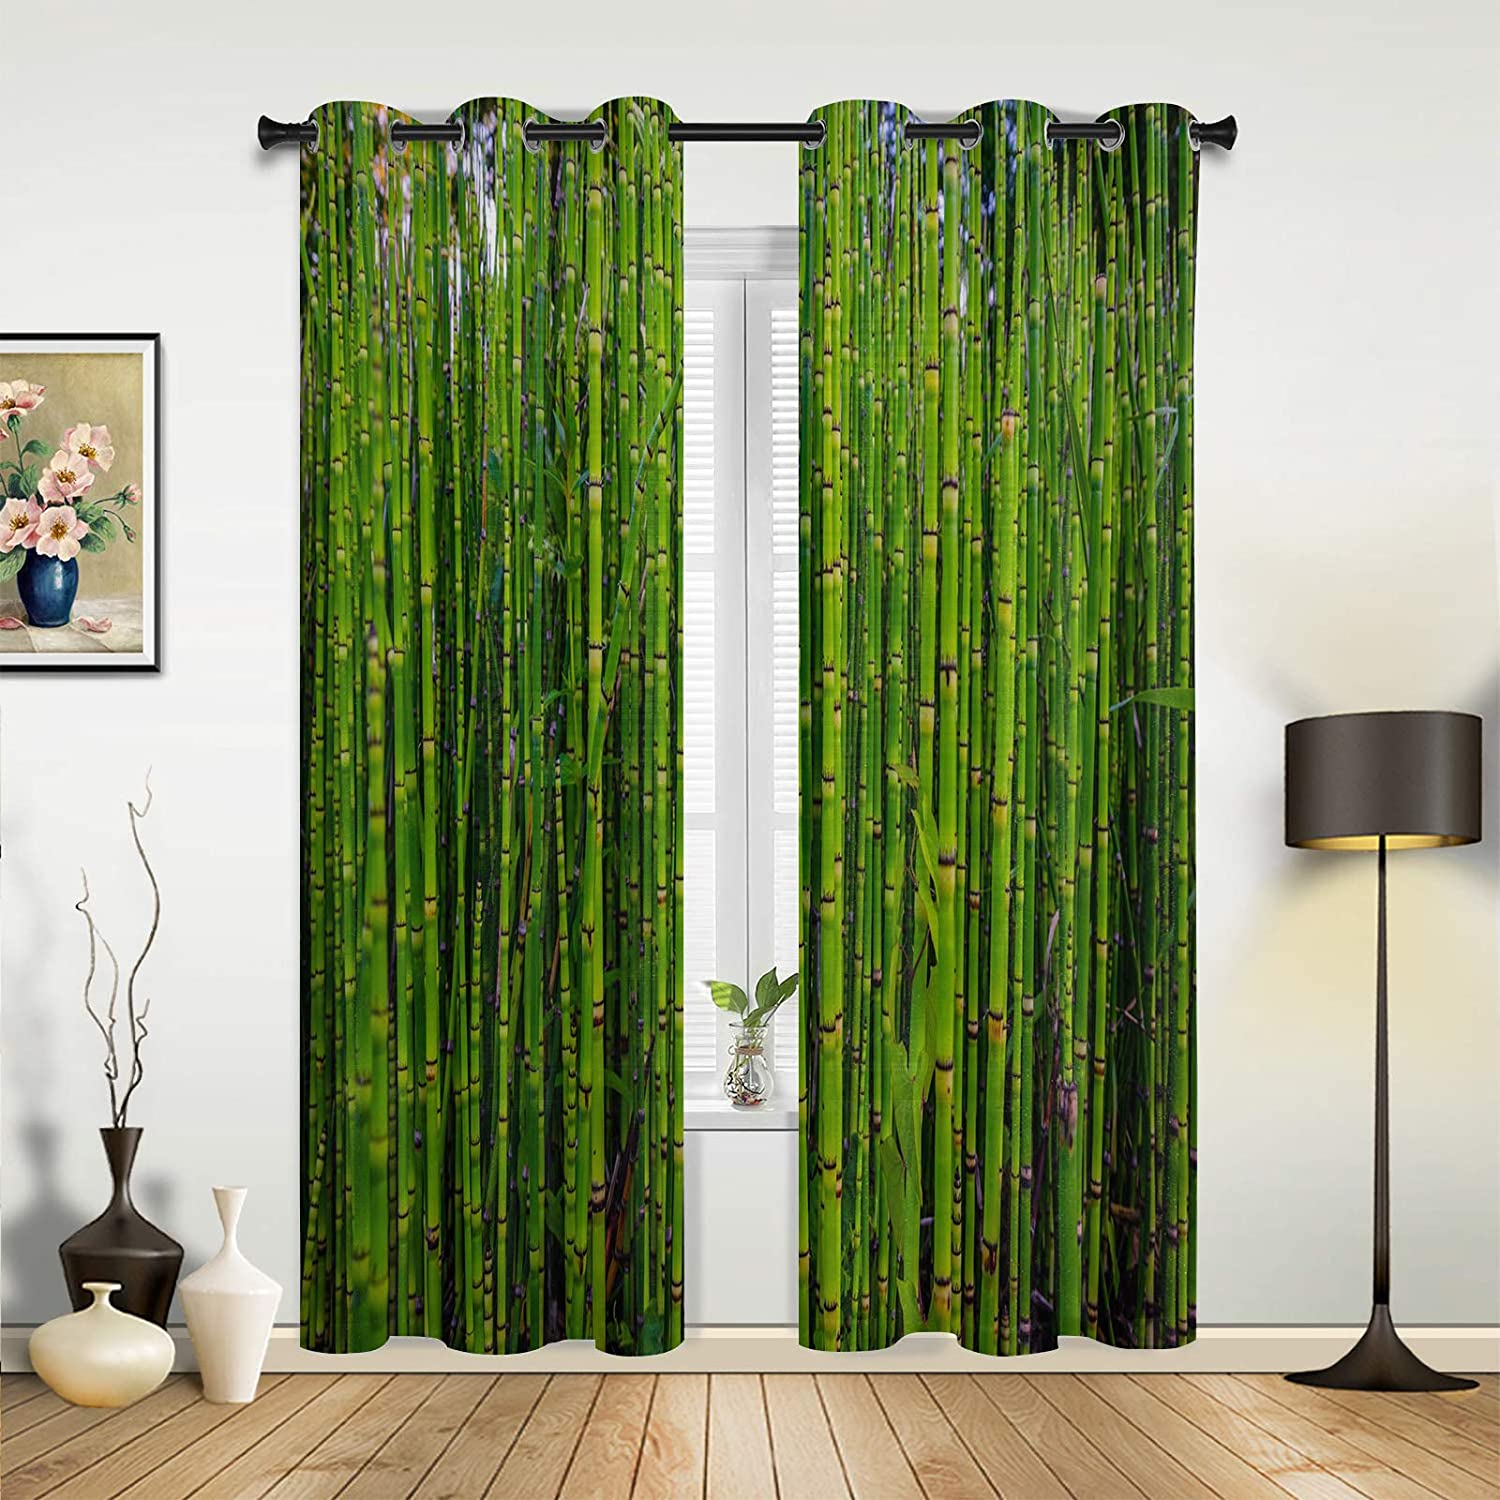 Beauty Year-end gift Decor Window Sheer Curtains New item for Room Bedroom Living Minim